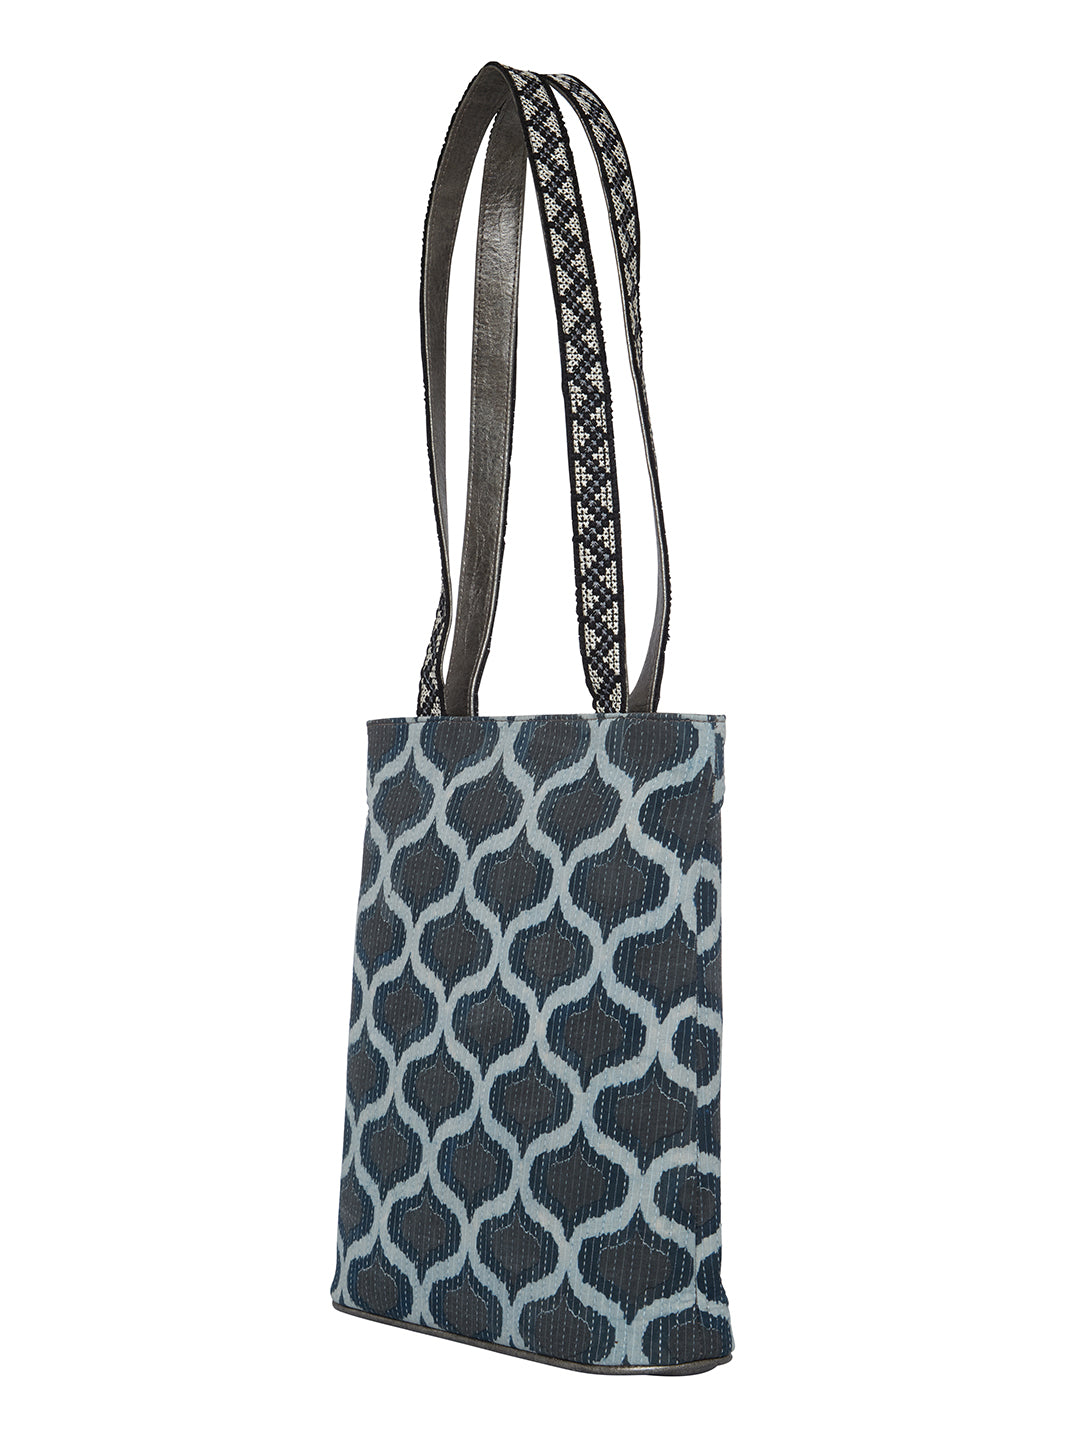 TARUSA Blue Geometric Sling Bag